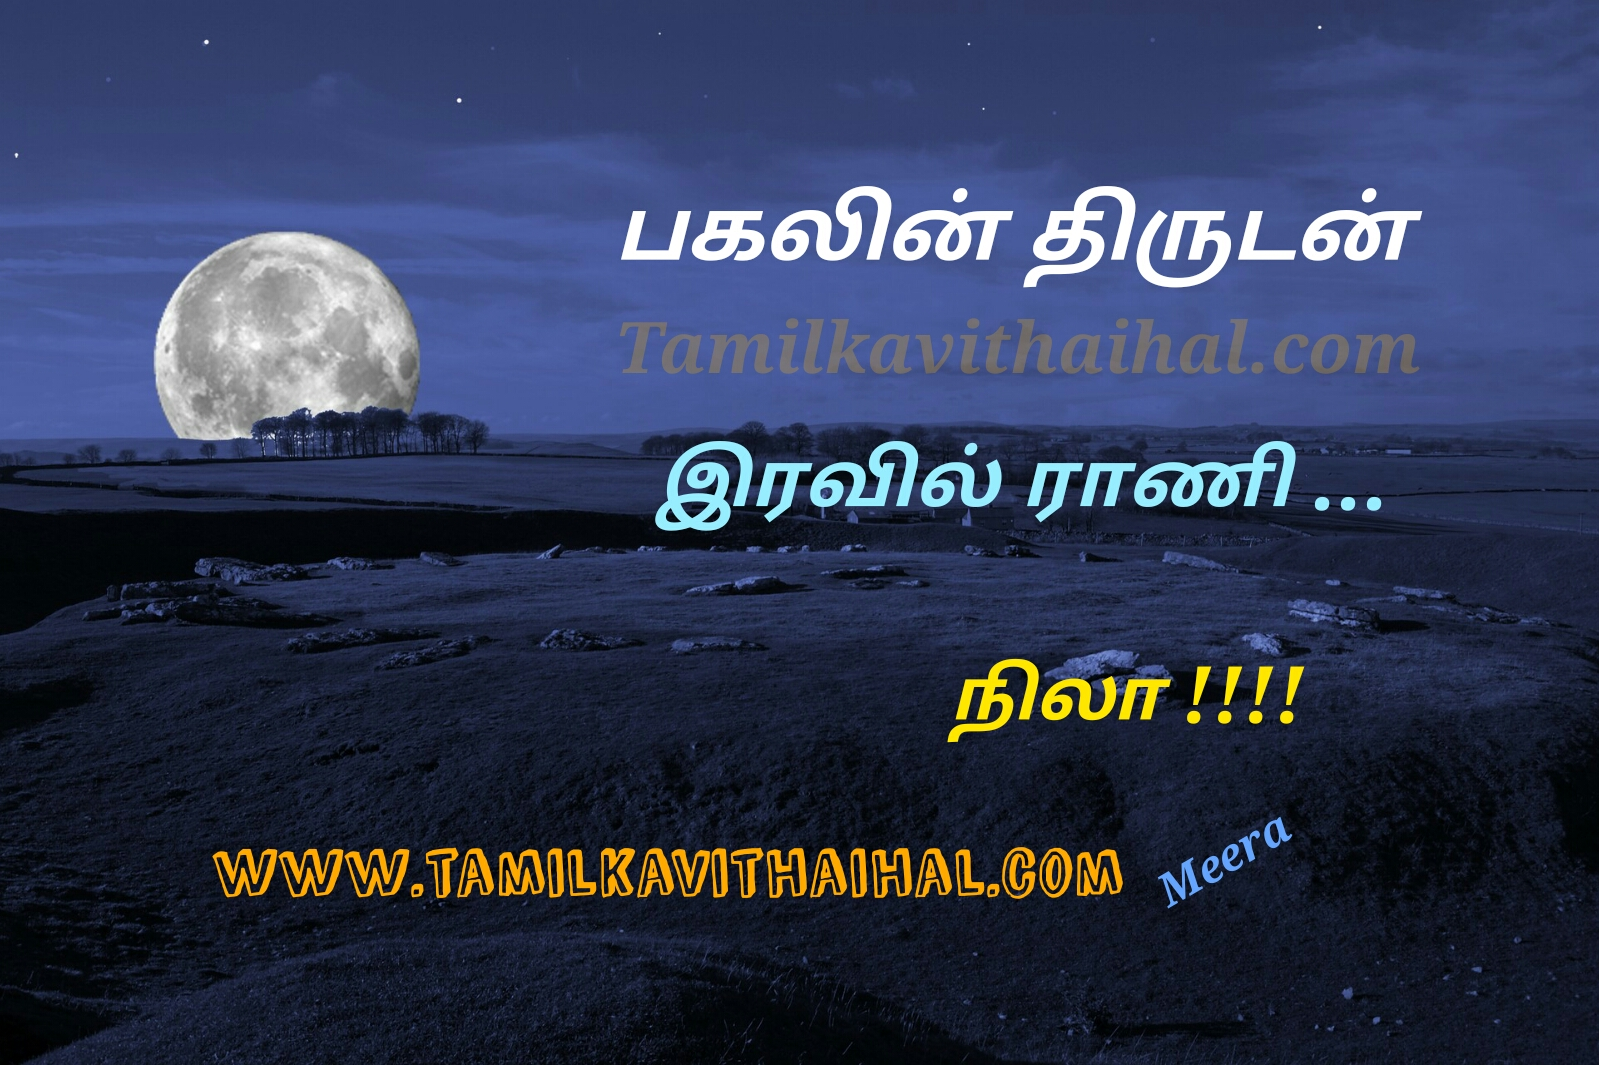 haikoo kavithai for nila moon in tamil pakal iravu meera